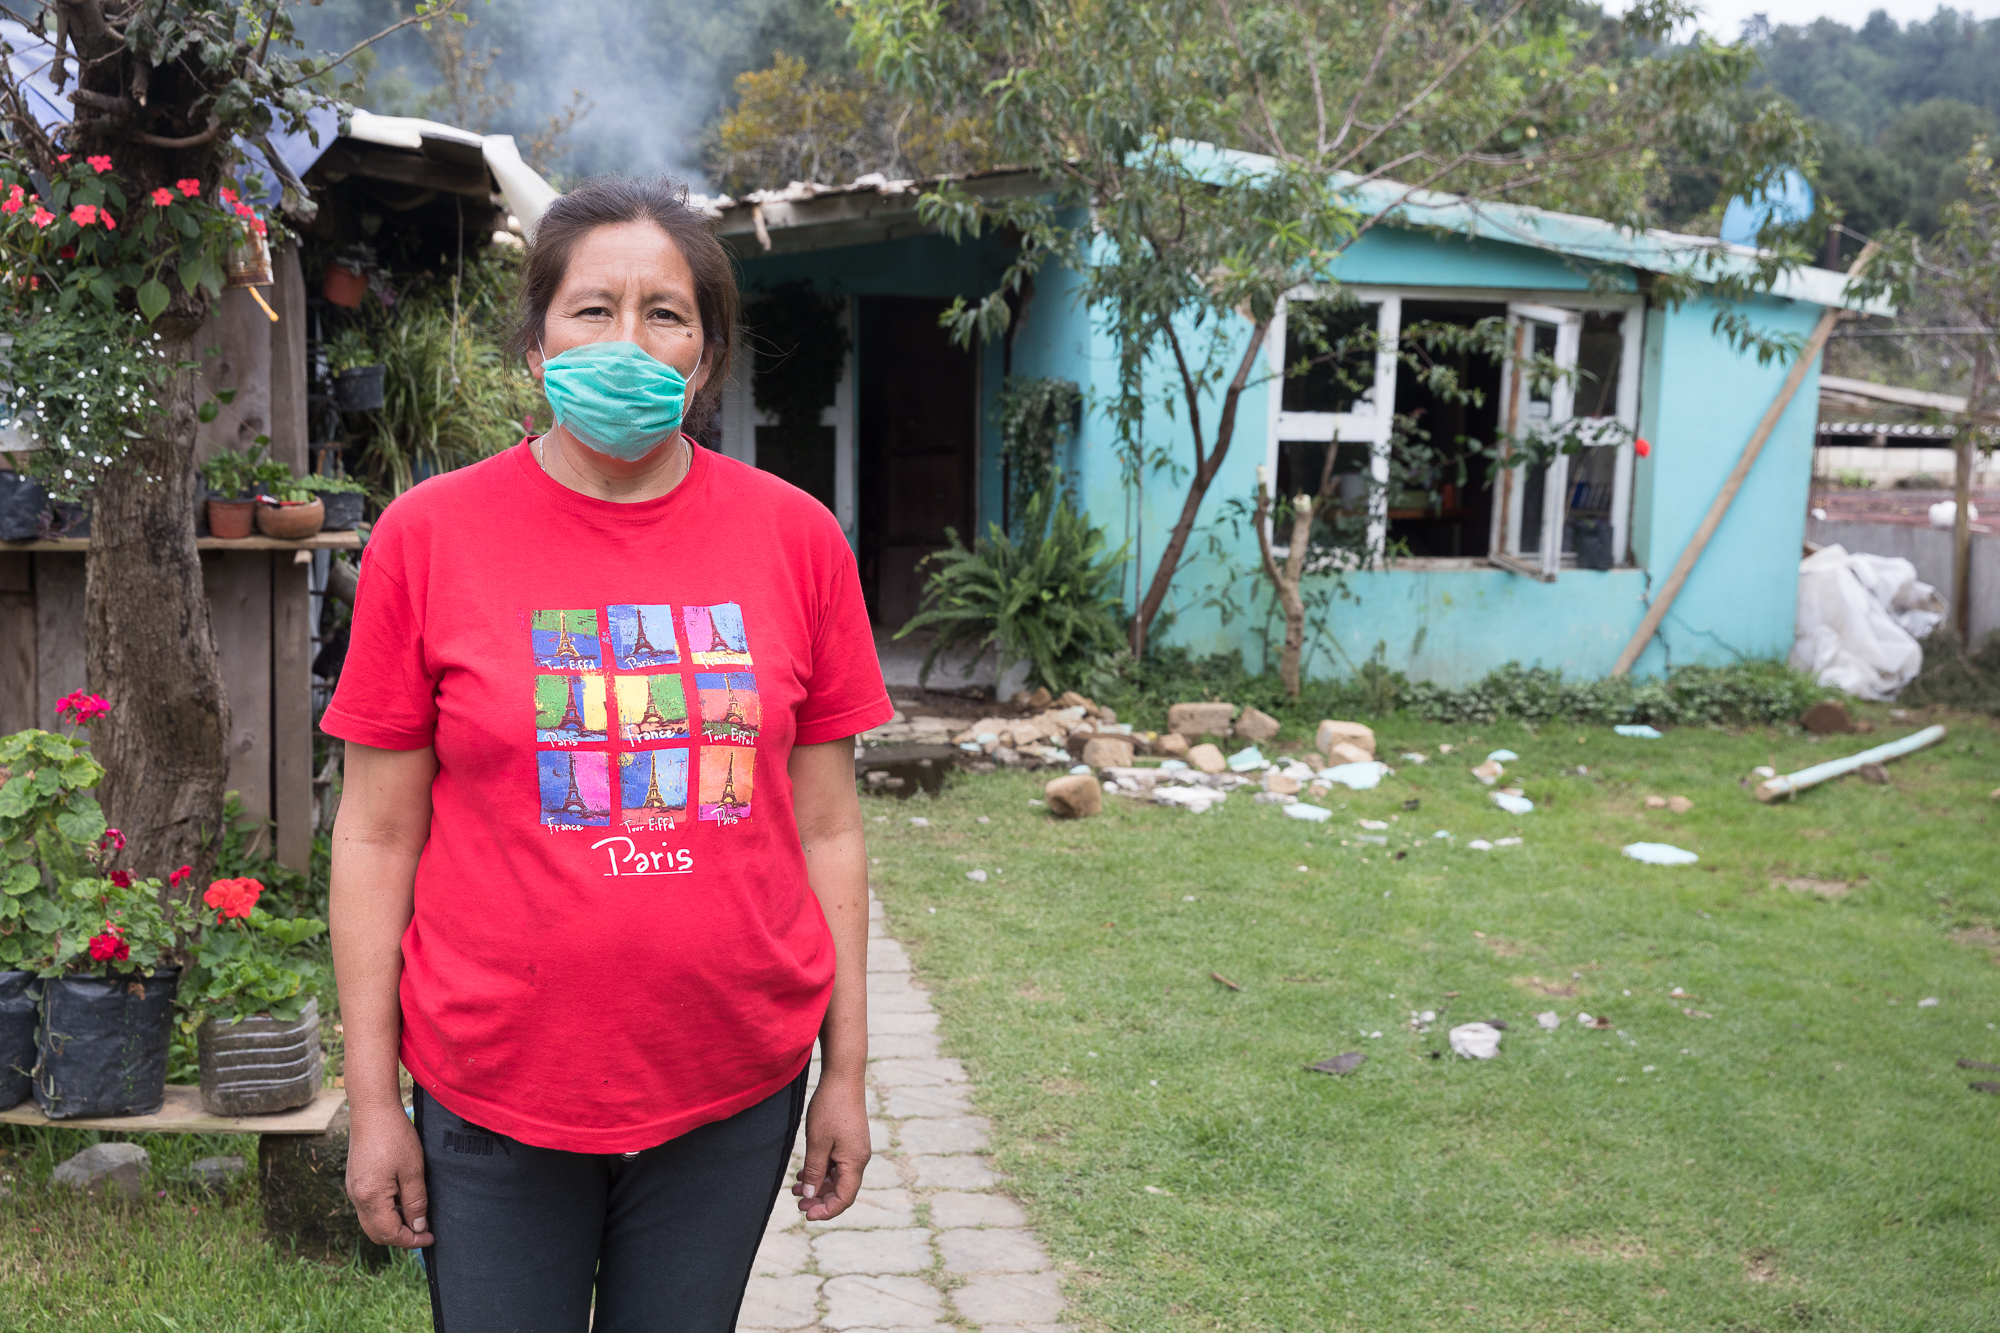 Virginia Hernández is a mother of six and is currently expecting another one. Her home was damaged and categorized uninhabitable by the authorities. PHOTO: Francisco Alcala Torreslanda